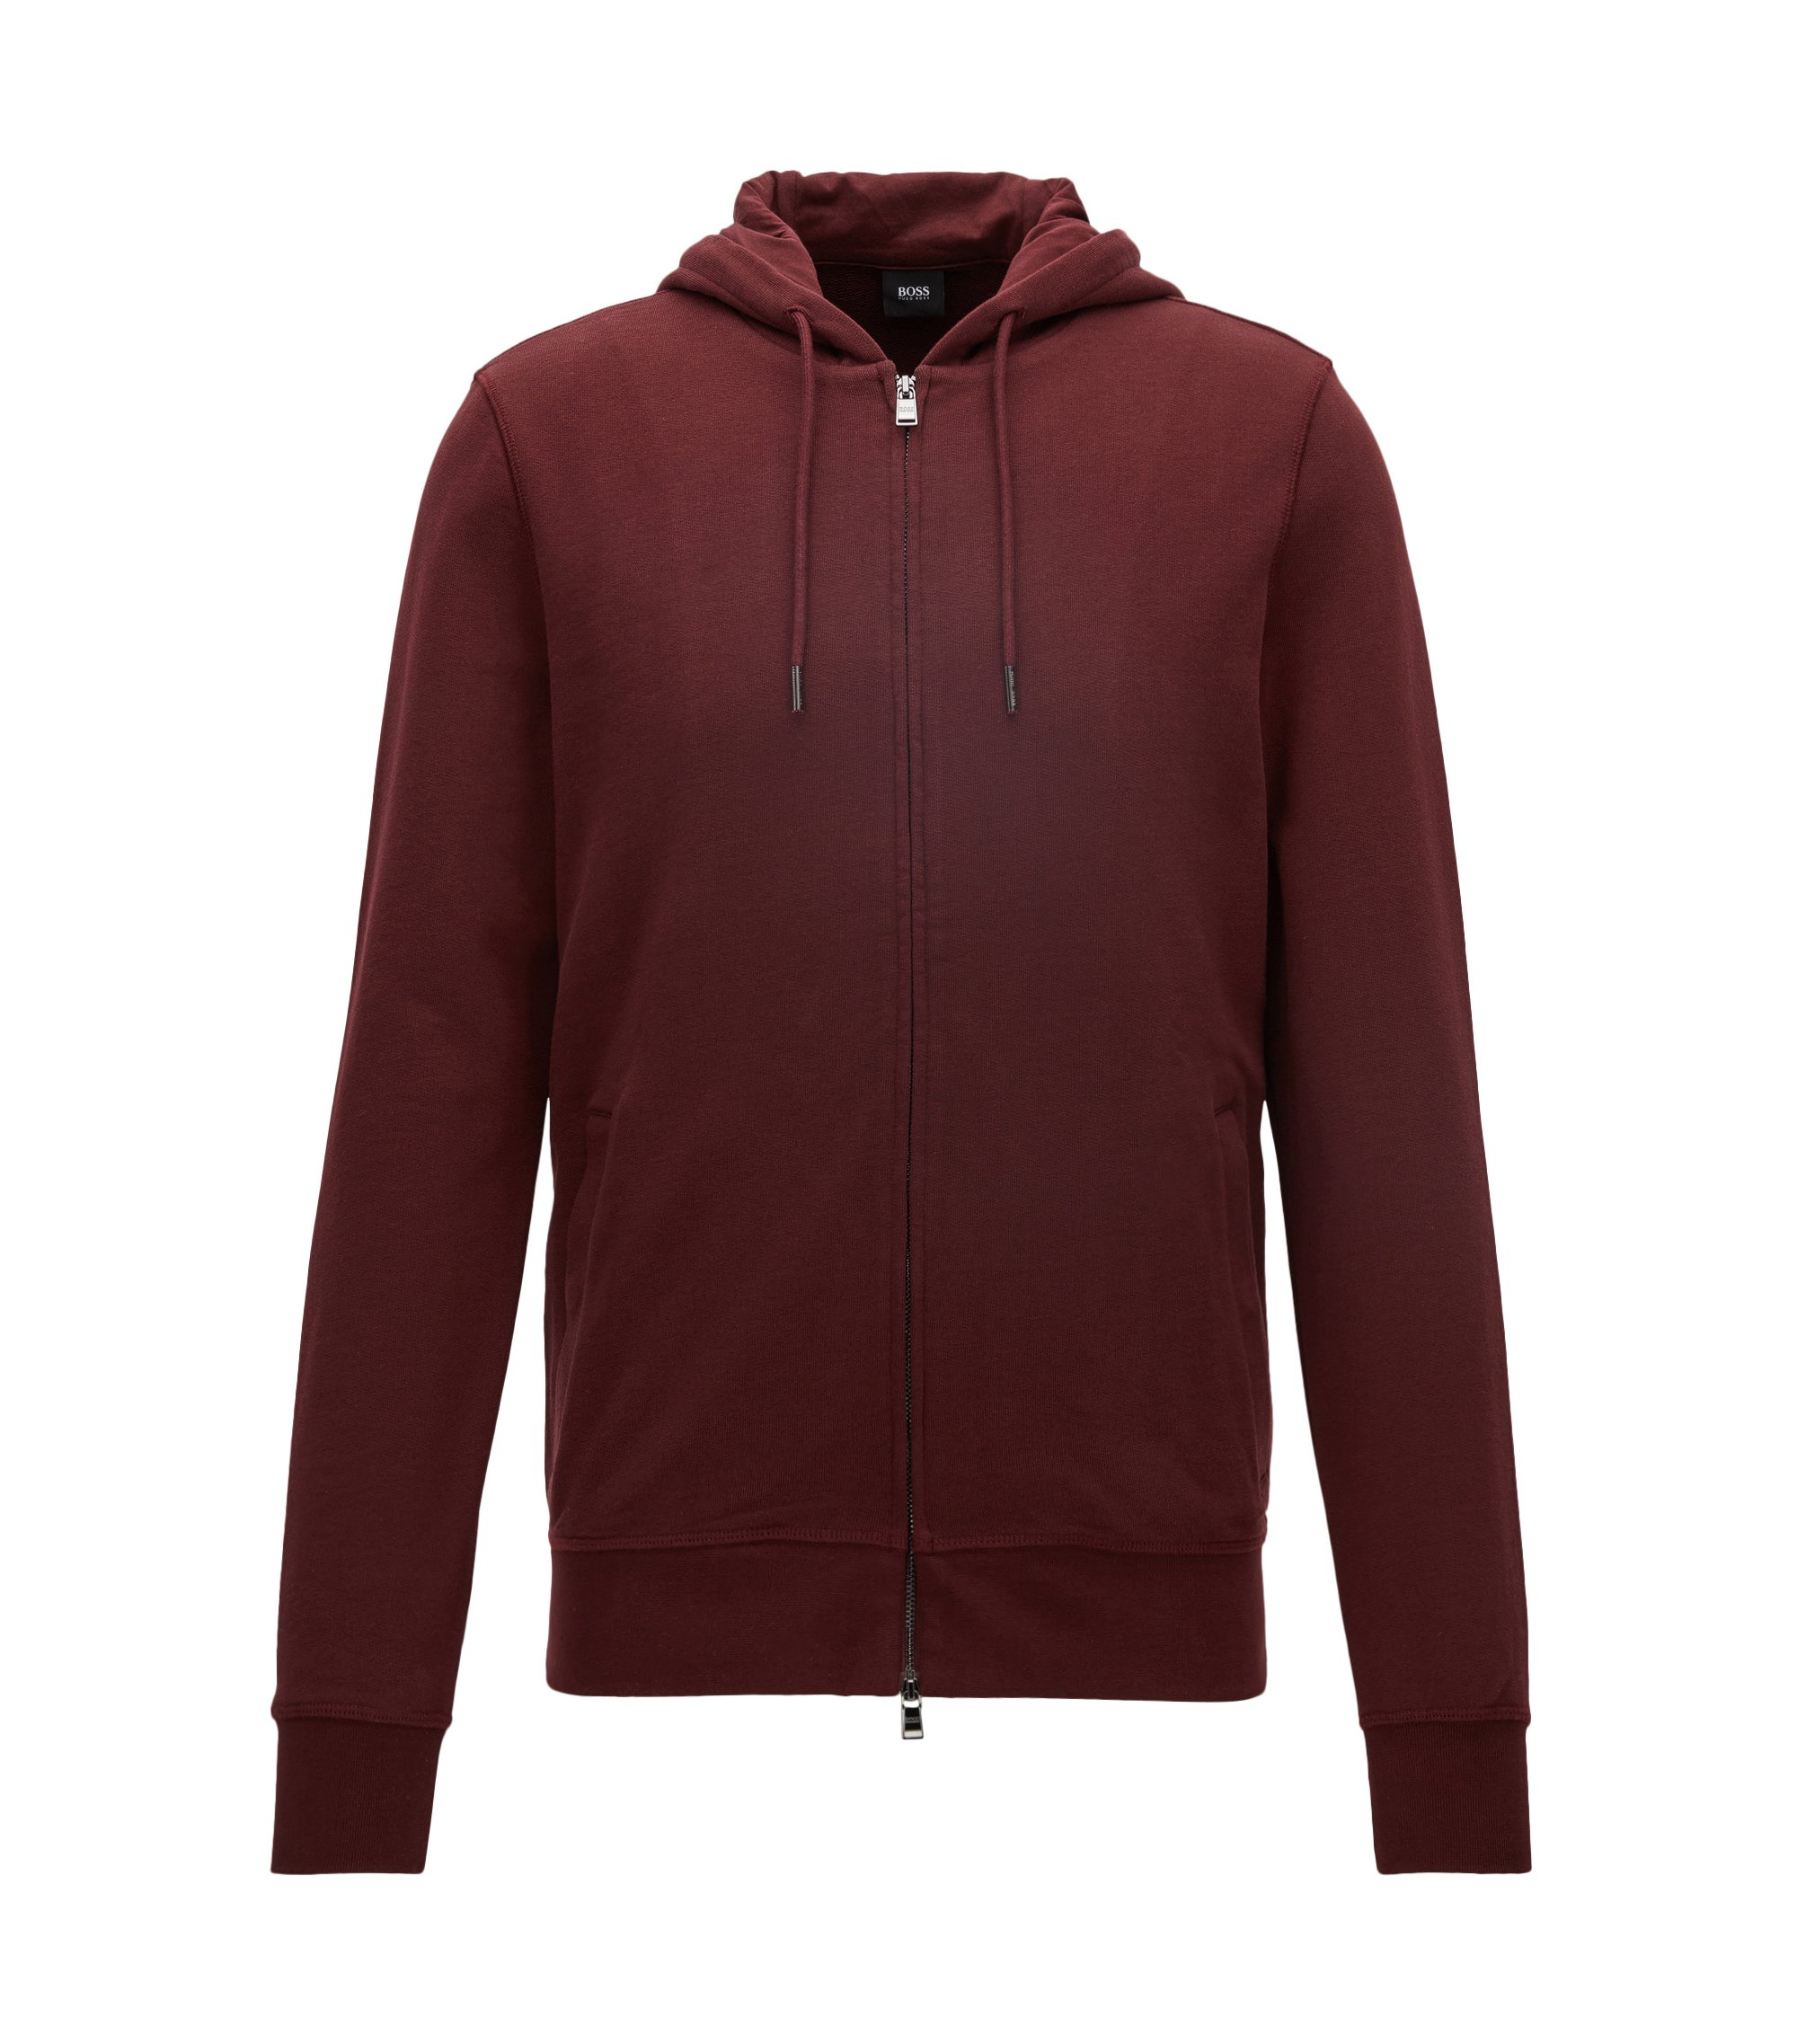 Sweat Slim Fit zippé molleton bouclette de coton, Rouge sombre